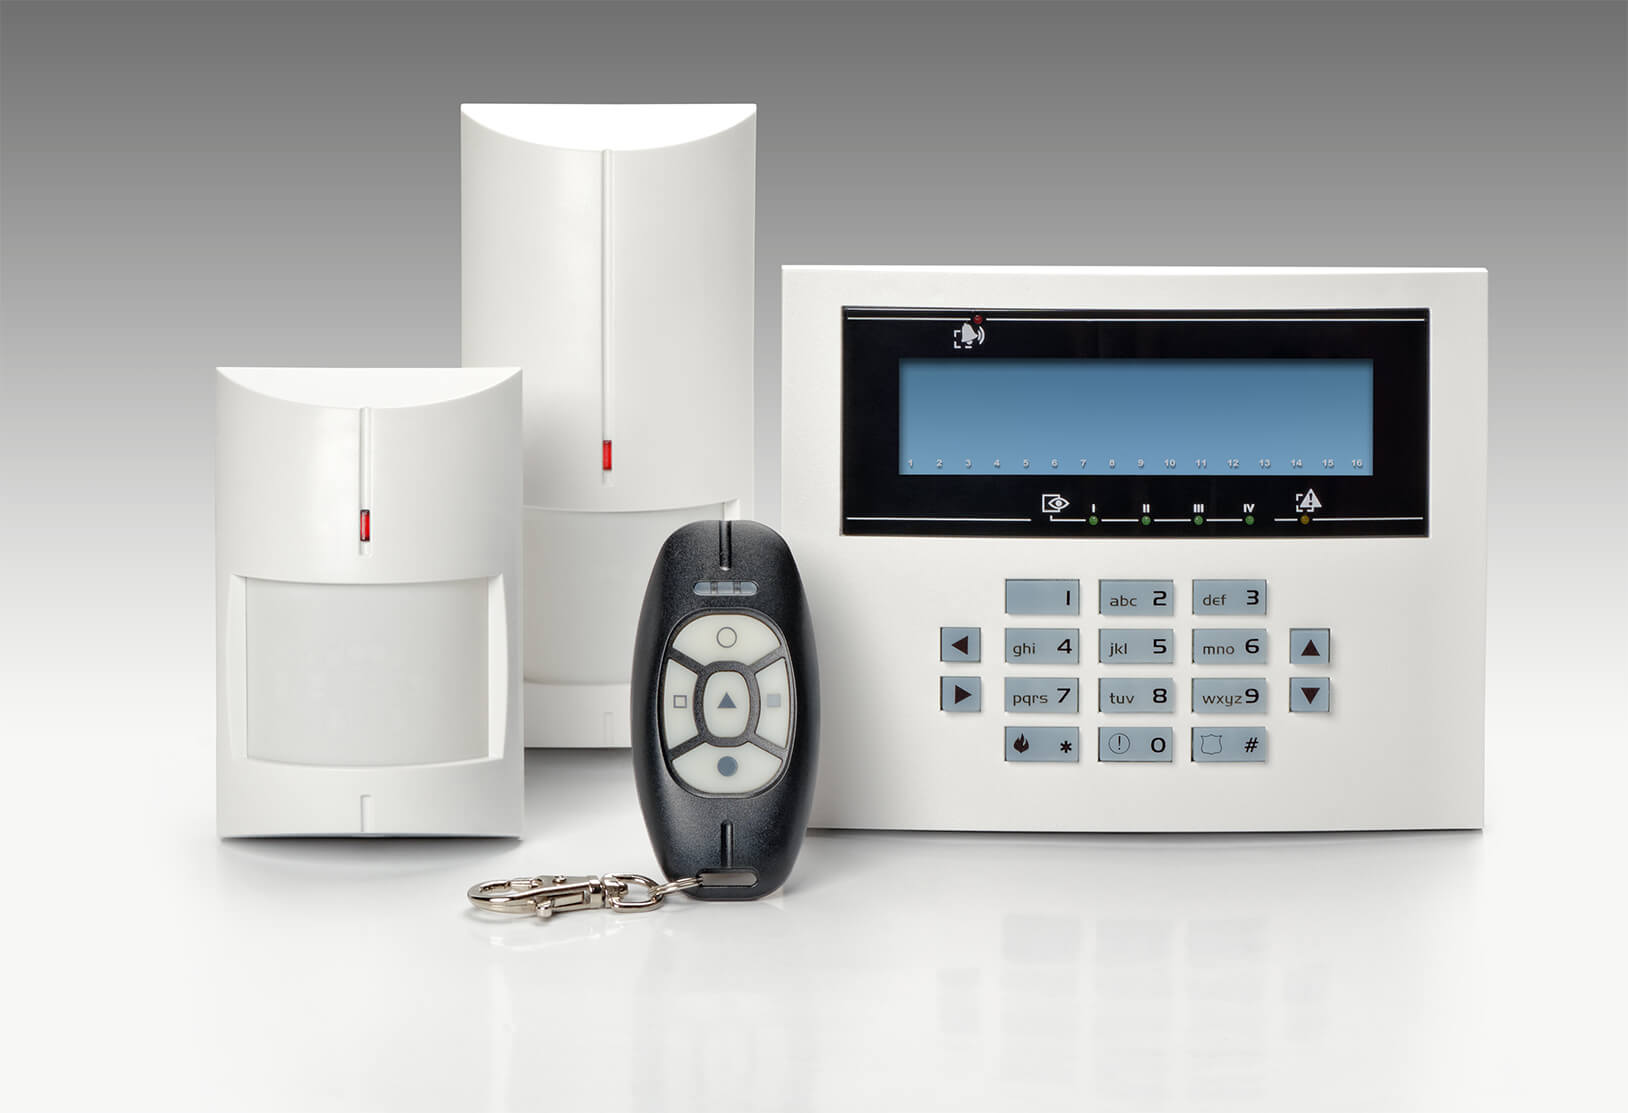 Business & Residential NACOSS Approved Burglar Alarms In Canonbury N1 - Local Canonbury N1 security company.Call 02078872244 - Dedicated to Safety & Security. Companies, shops and homes ..